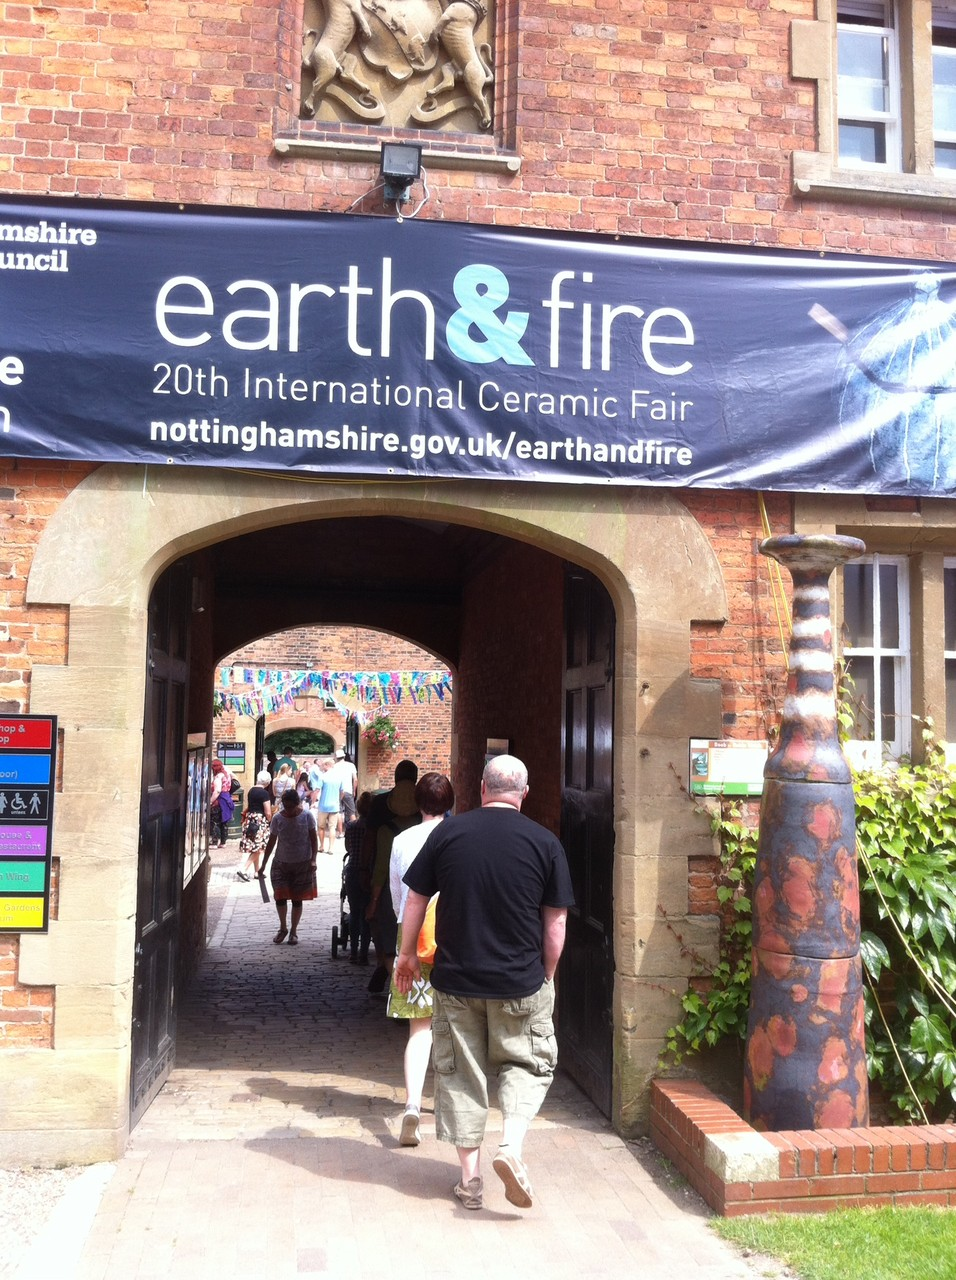 Earth & Fire 2014, Rufford Abbey, UK